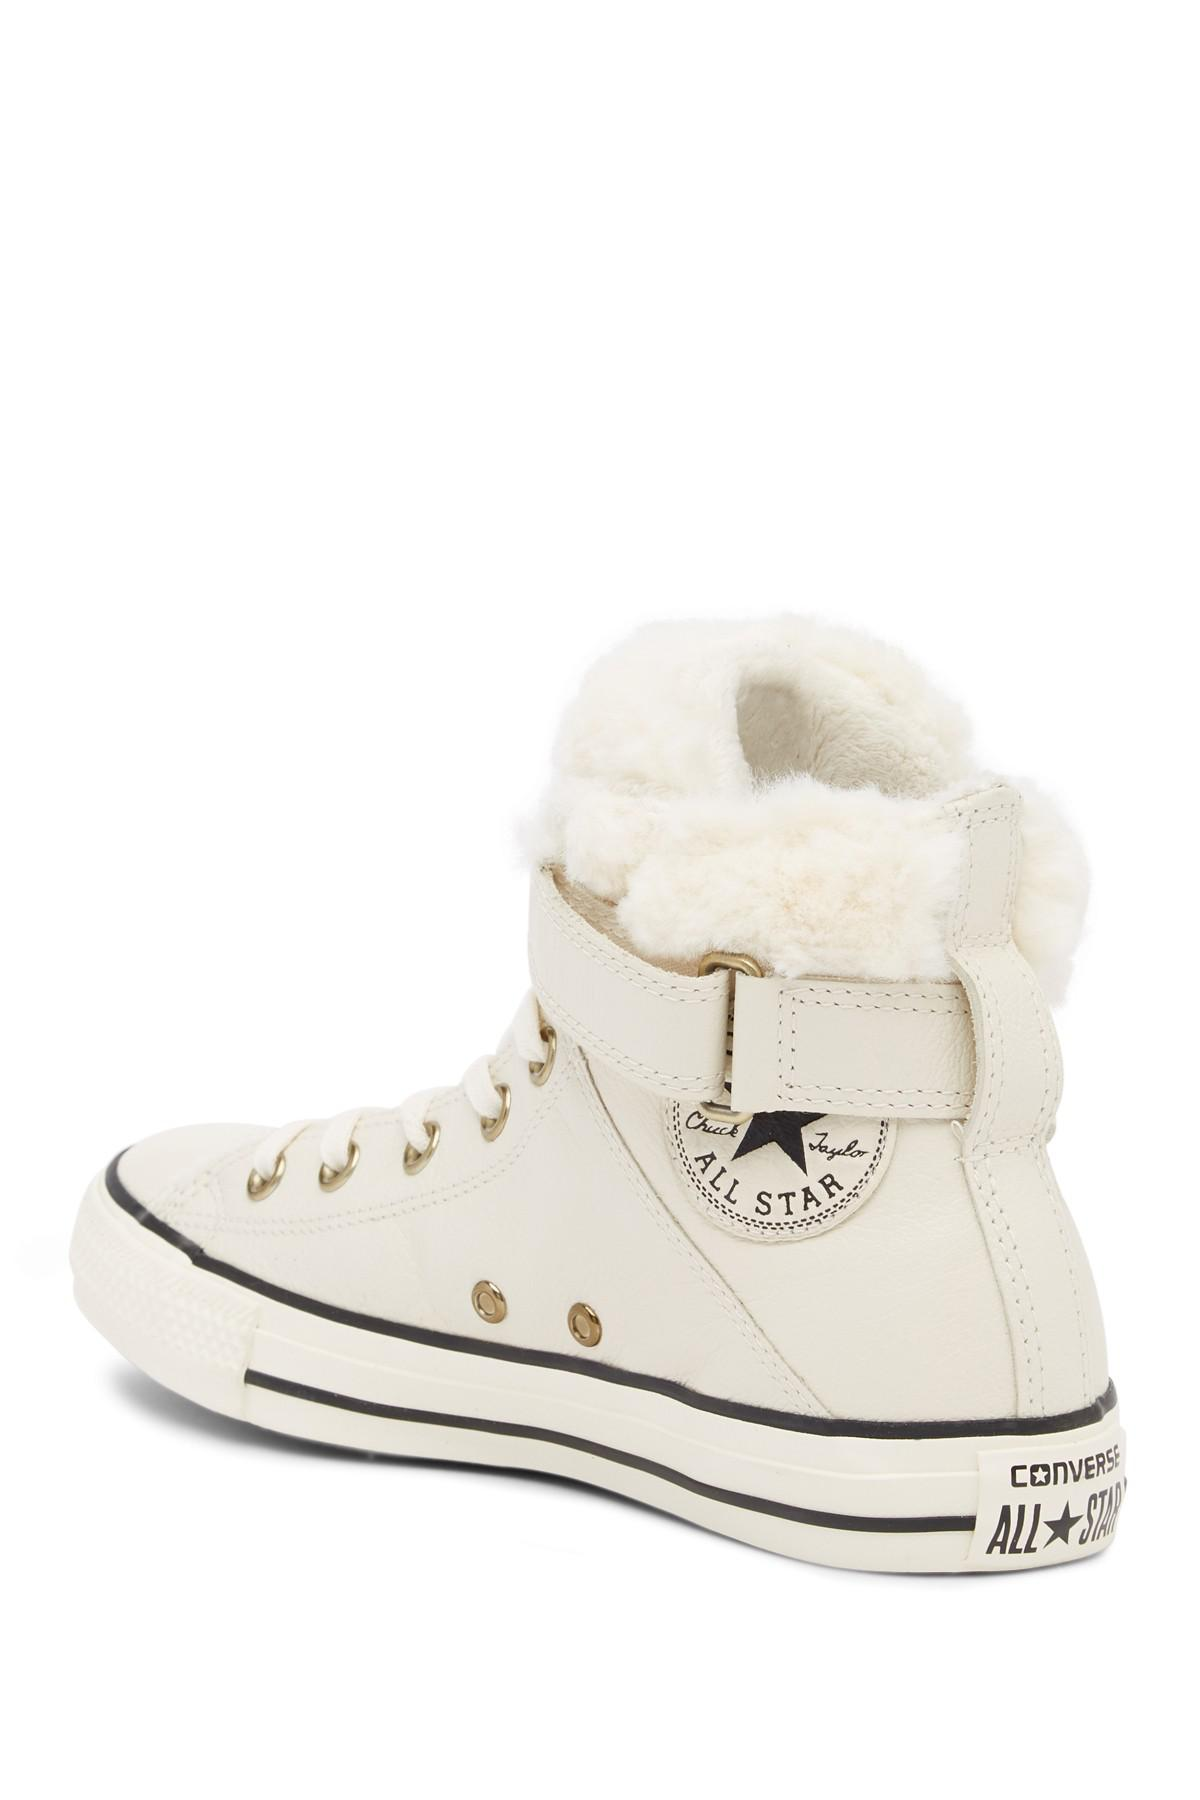 f80258760690 Lyst - Converse Chuck Taylor All Star Brea Leather   Faux Fur High ...